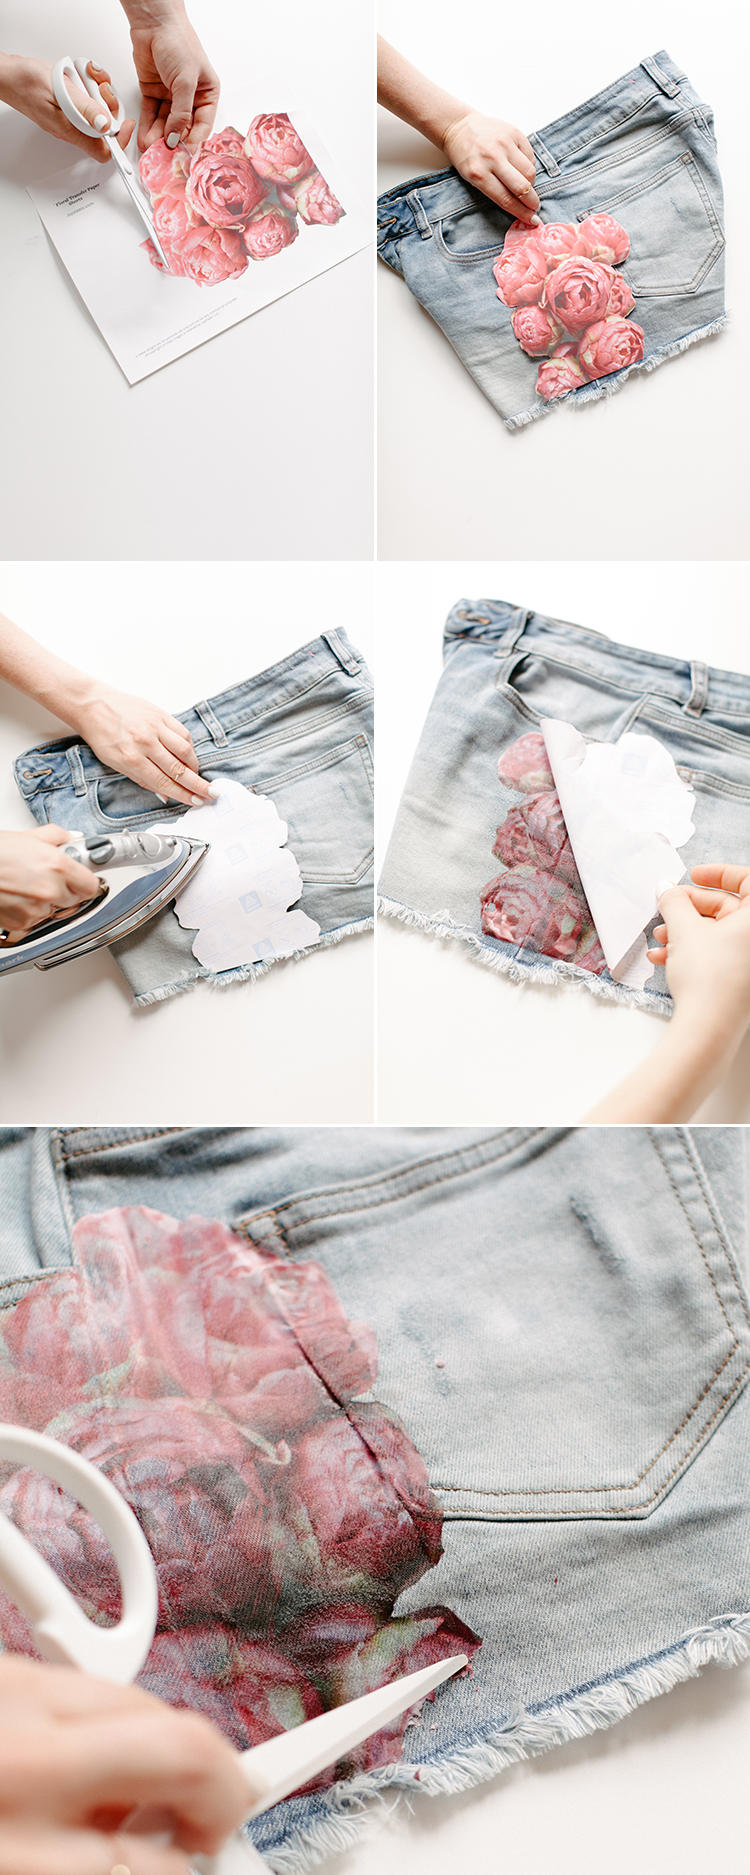 Add a modern-boho look to your favorite summer cutoffs with this super easy floral photo transfer DIY! For the full tutorial and more easy fashion crafts head to jojotastic.com